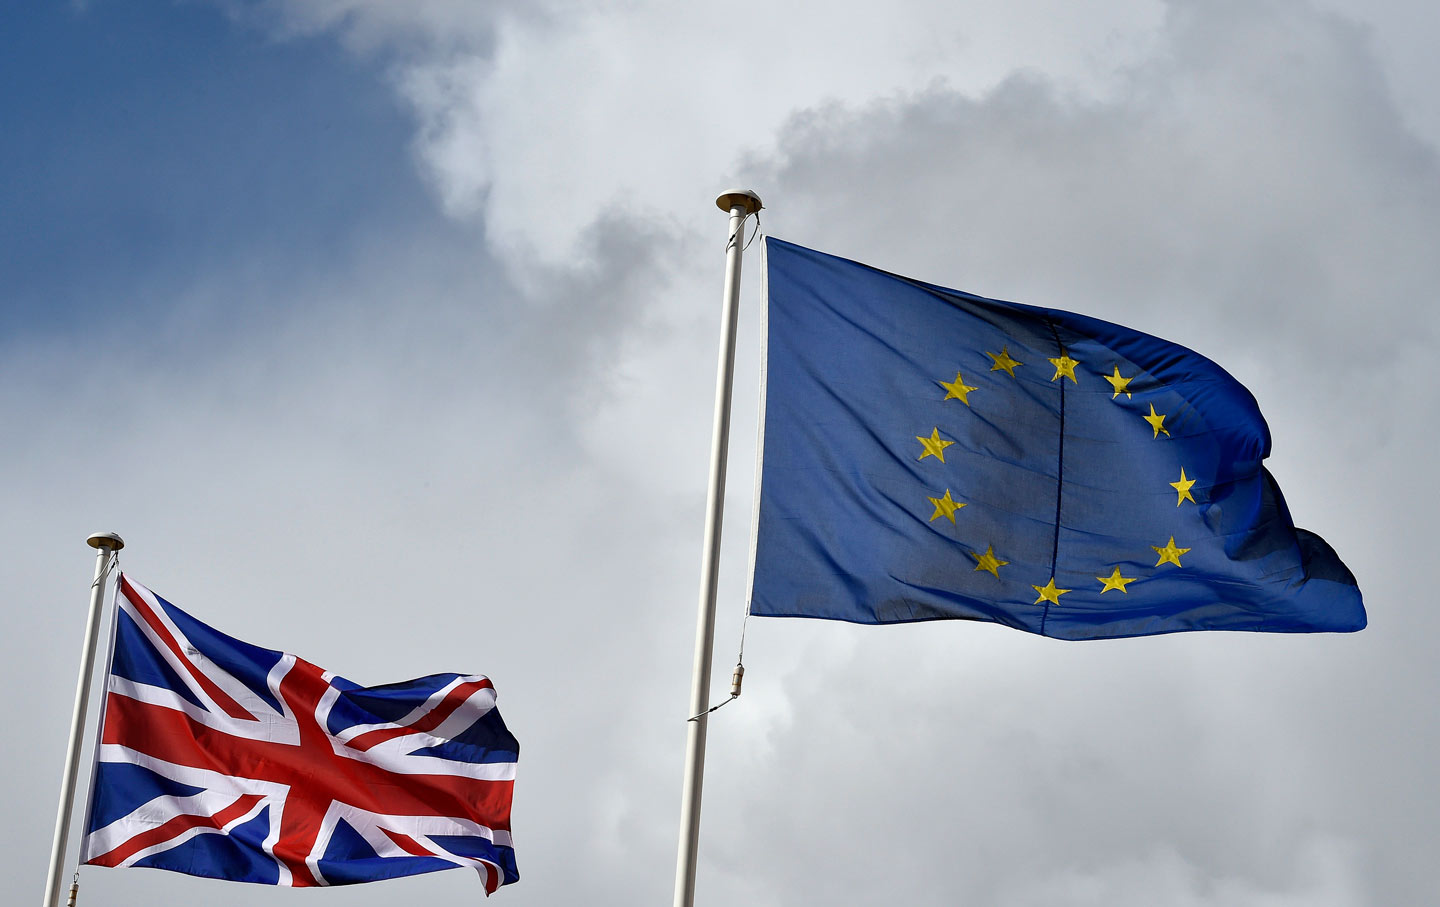 EU and Britain flags. (Press Association via AP Images)